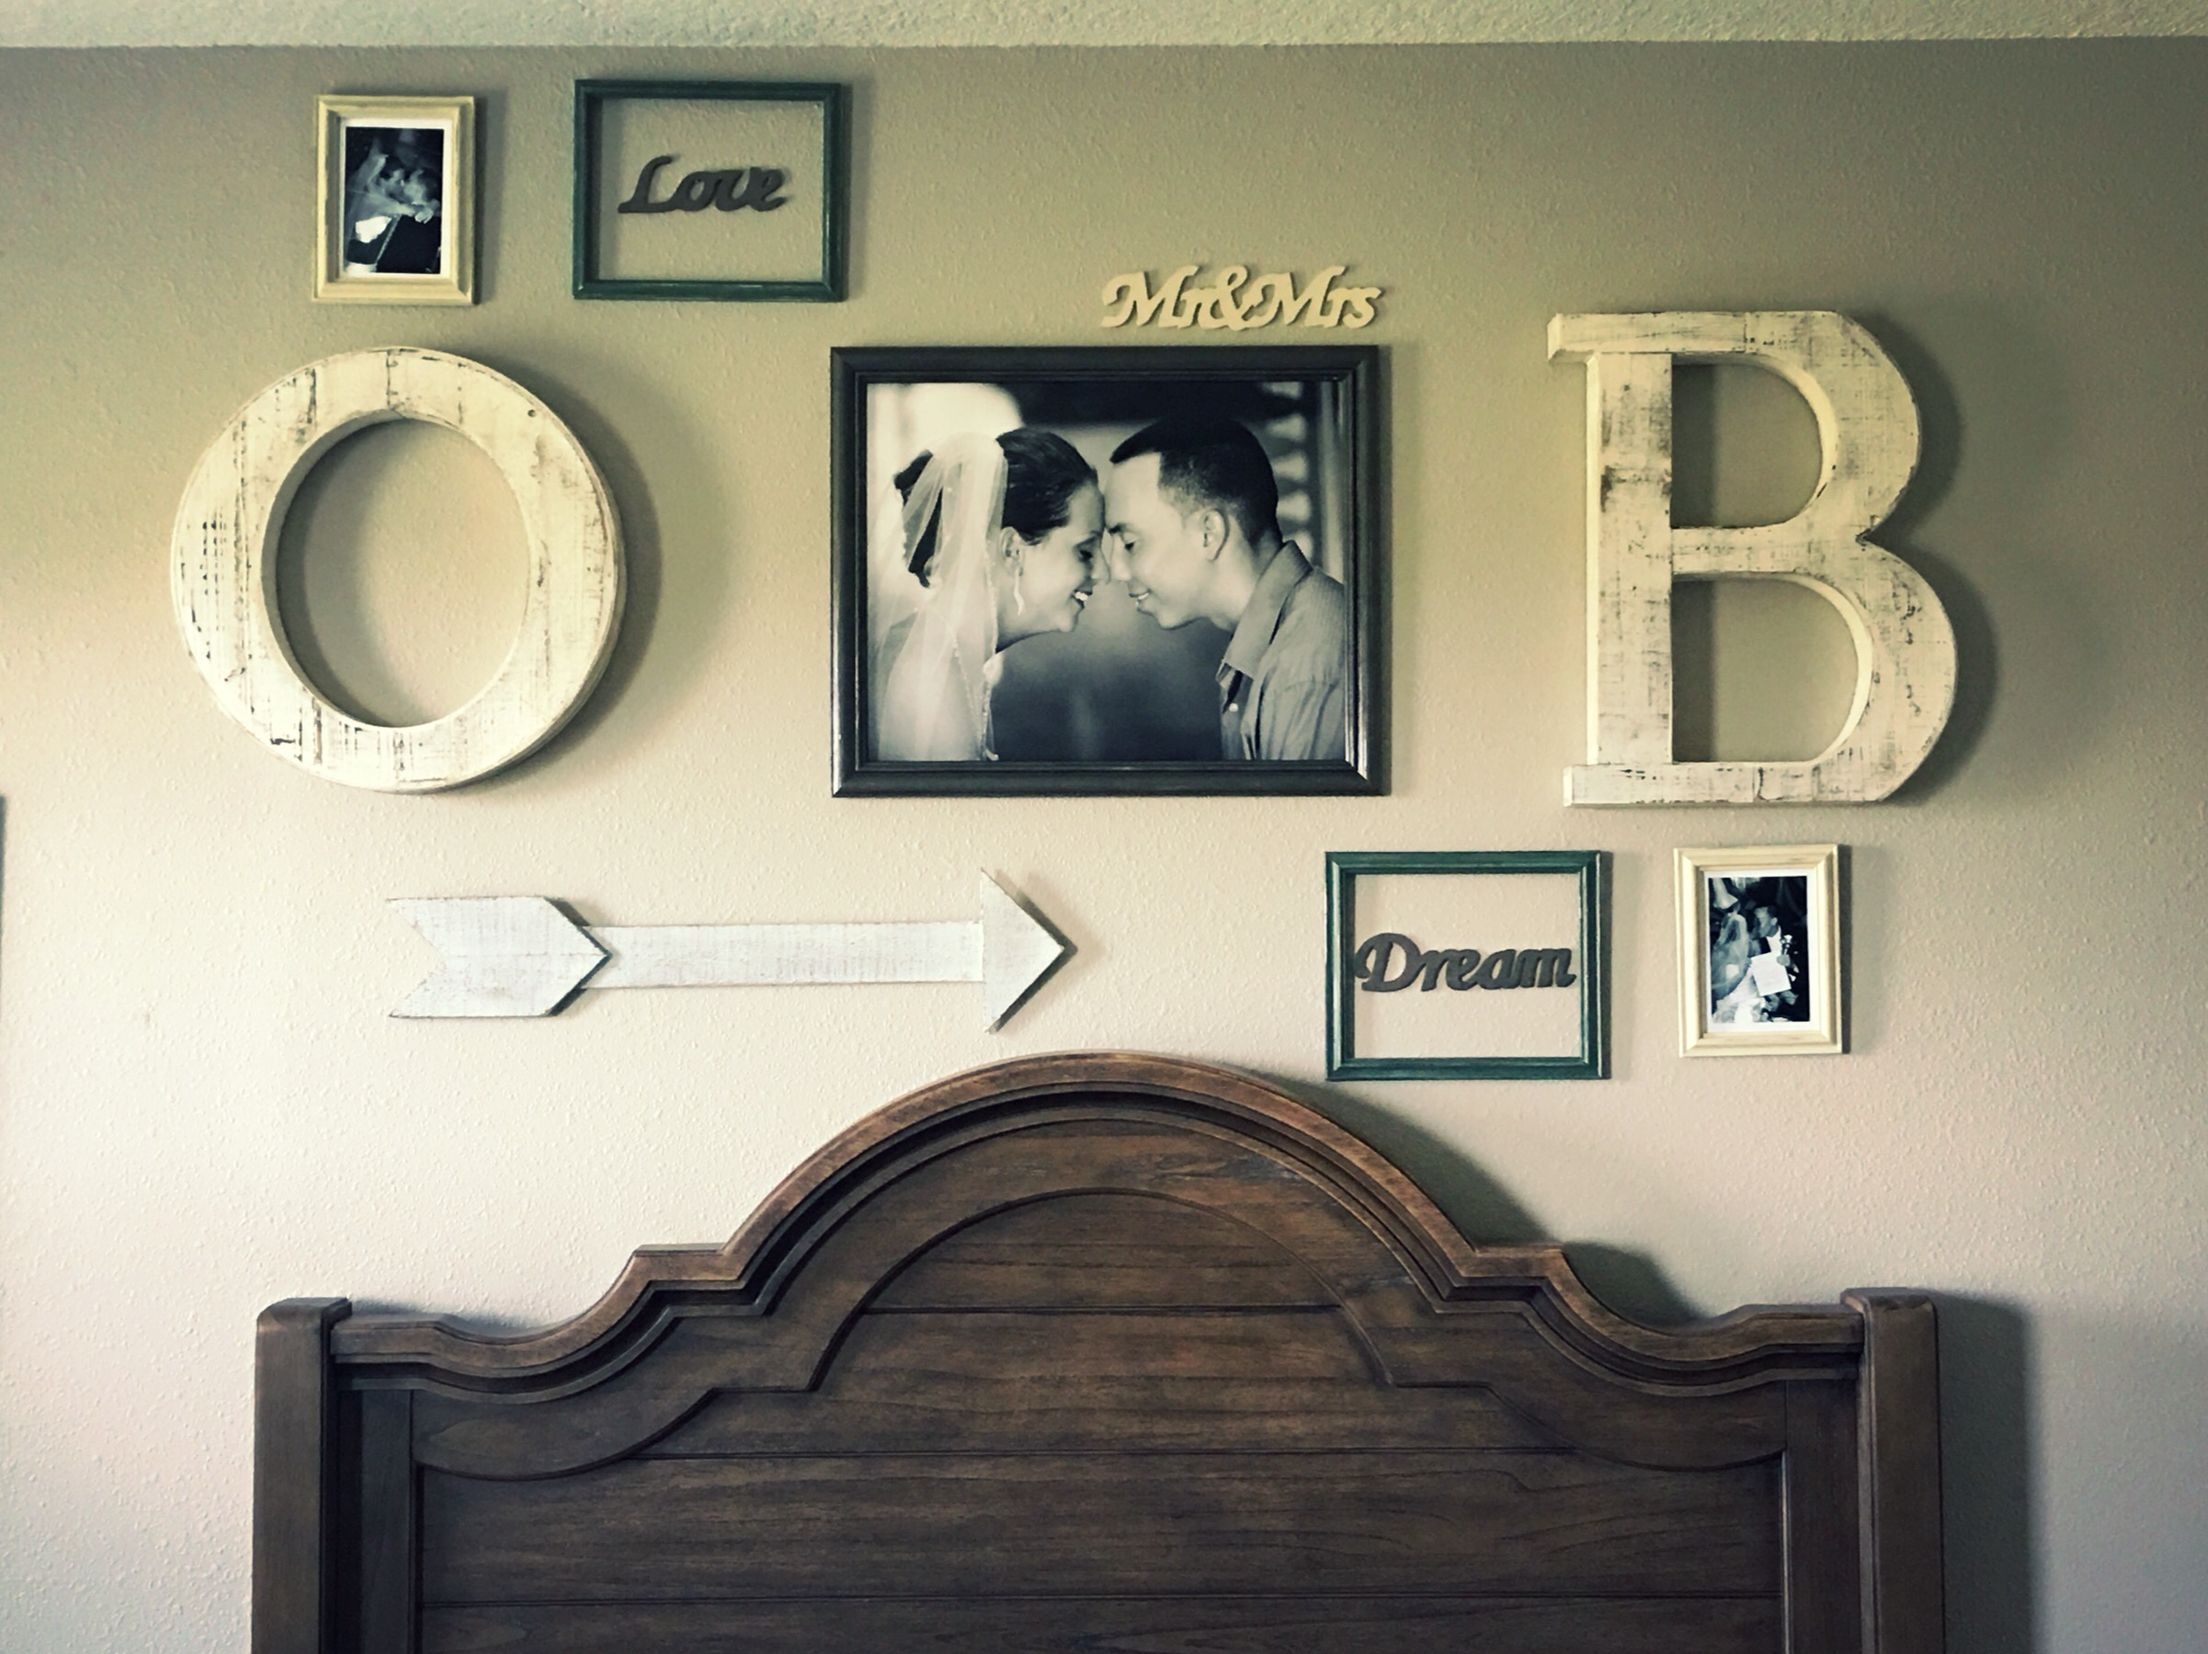 Bedroom wall decorating ideas picture frames - Rustic Theme Photo Wall Picture Wall His And Hers Bedroom Decor